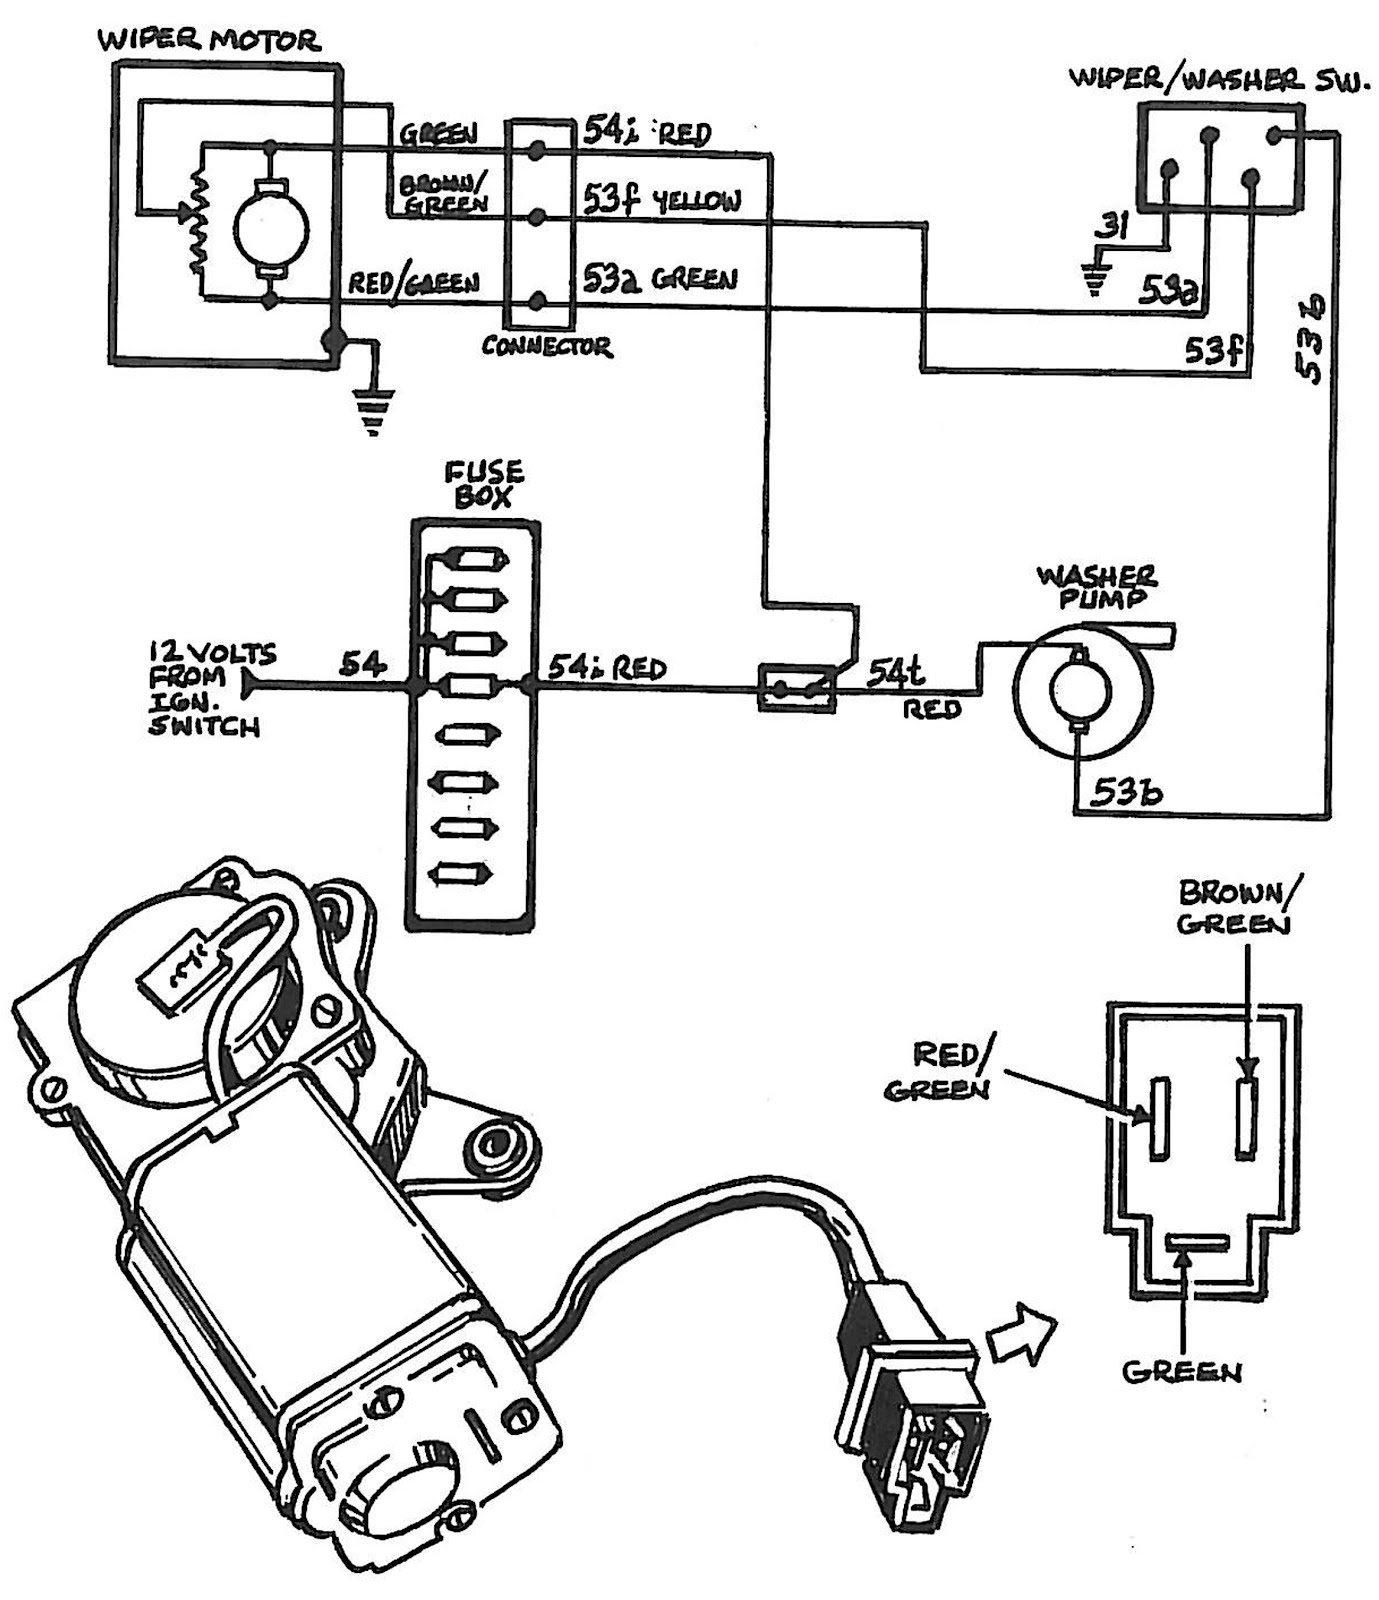 2001 Bmw 325i Ignition Circuit Wiring Simple Guide About 2002 Honda 1100 Schematic Chevrolet Wiper Diagram Get Free Image